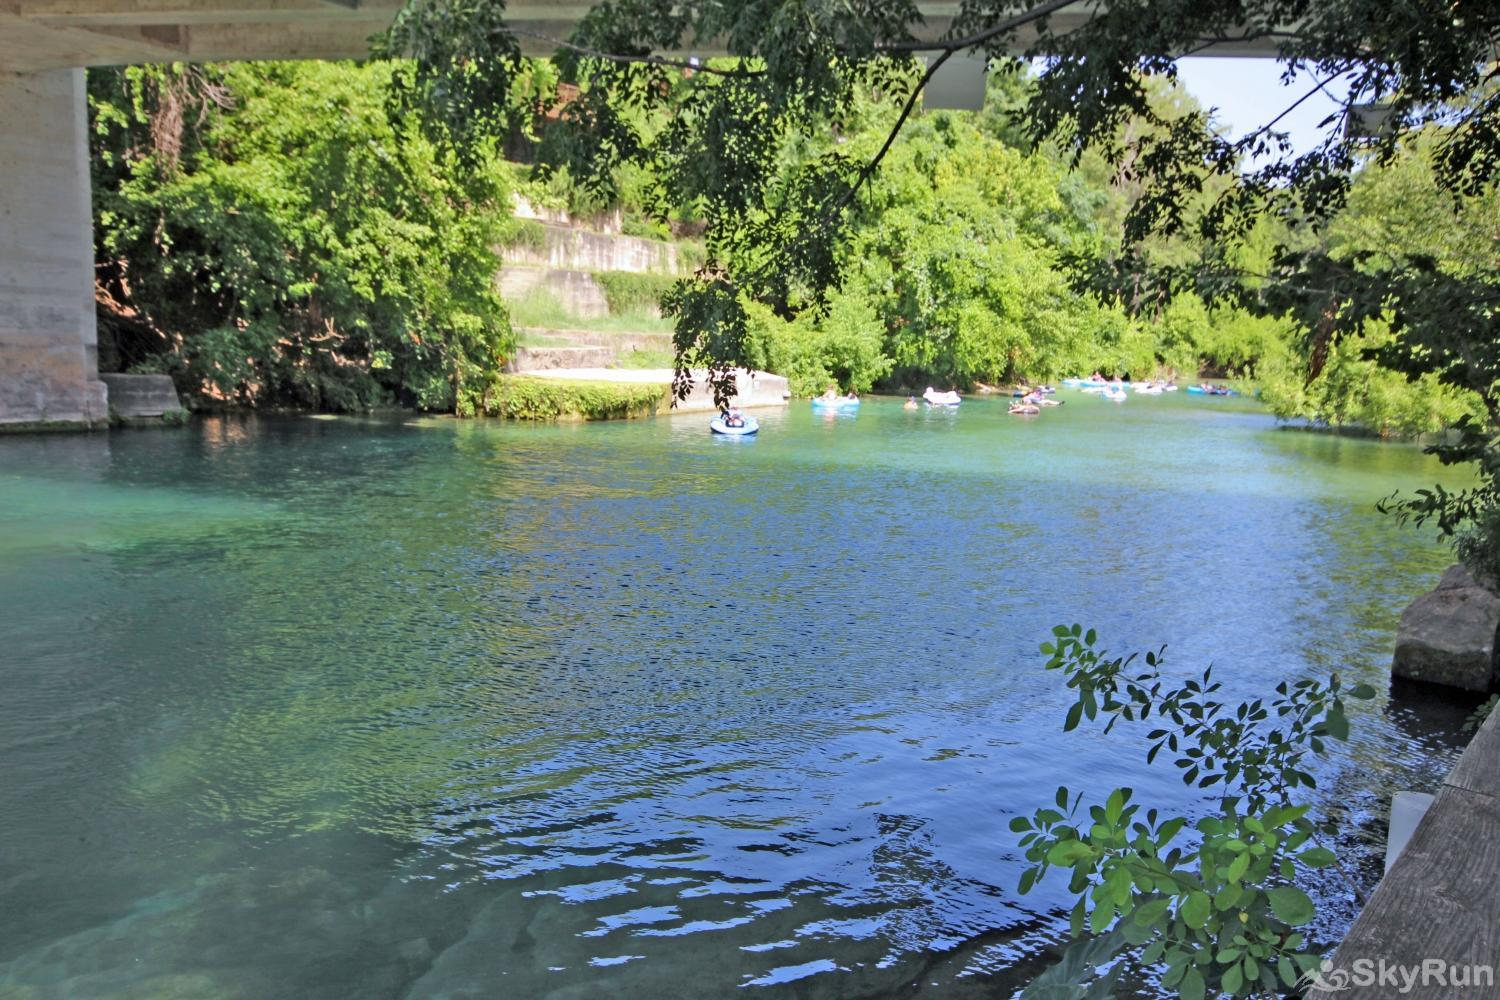 BRAUN RIO Tube through town on the beautiful Comal River